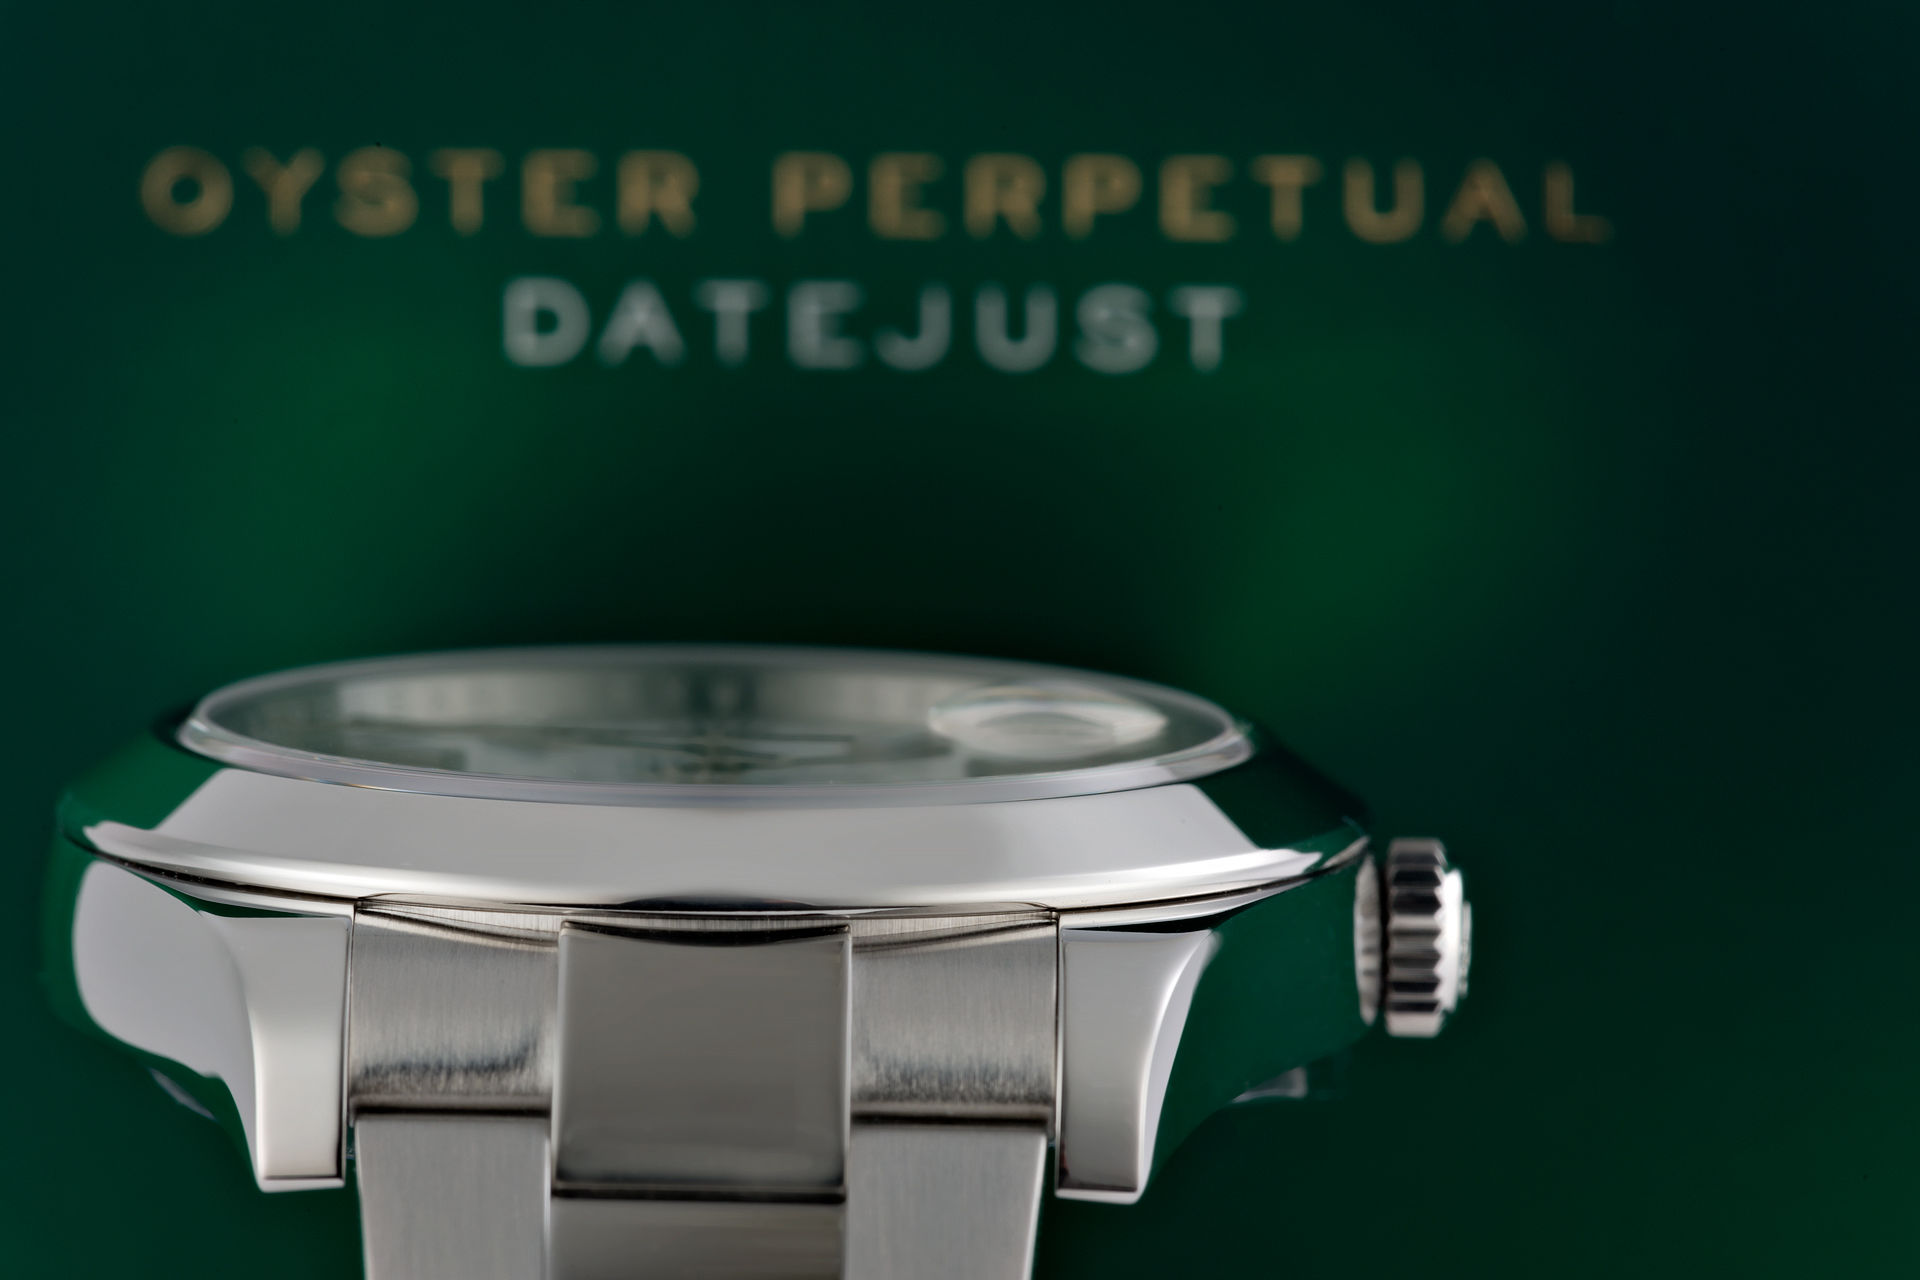 ref 116300 | 'Rolex Warranty to 2021' | Rolex Datejust II